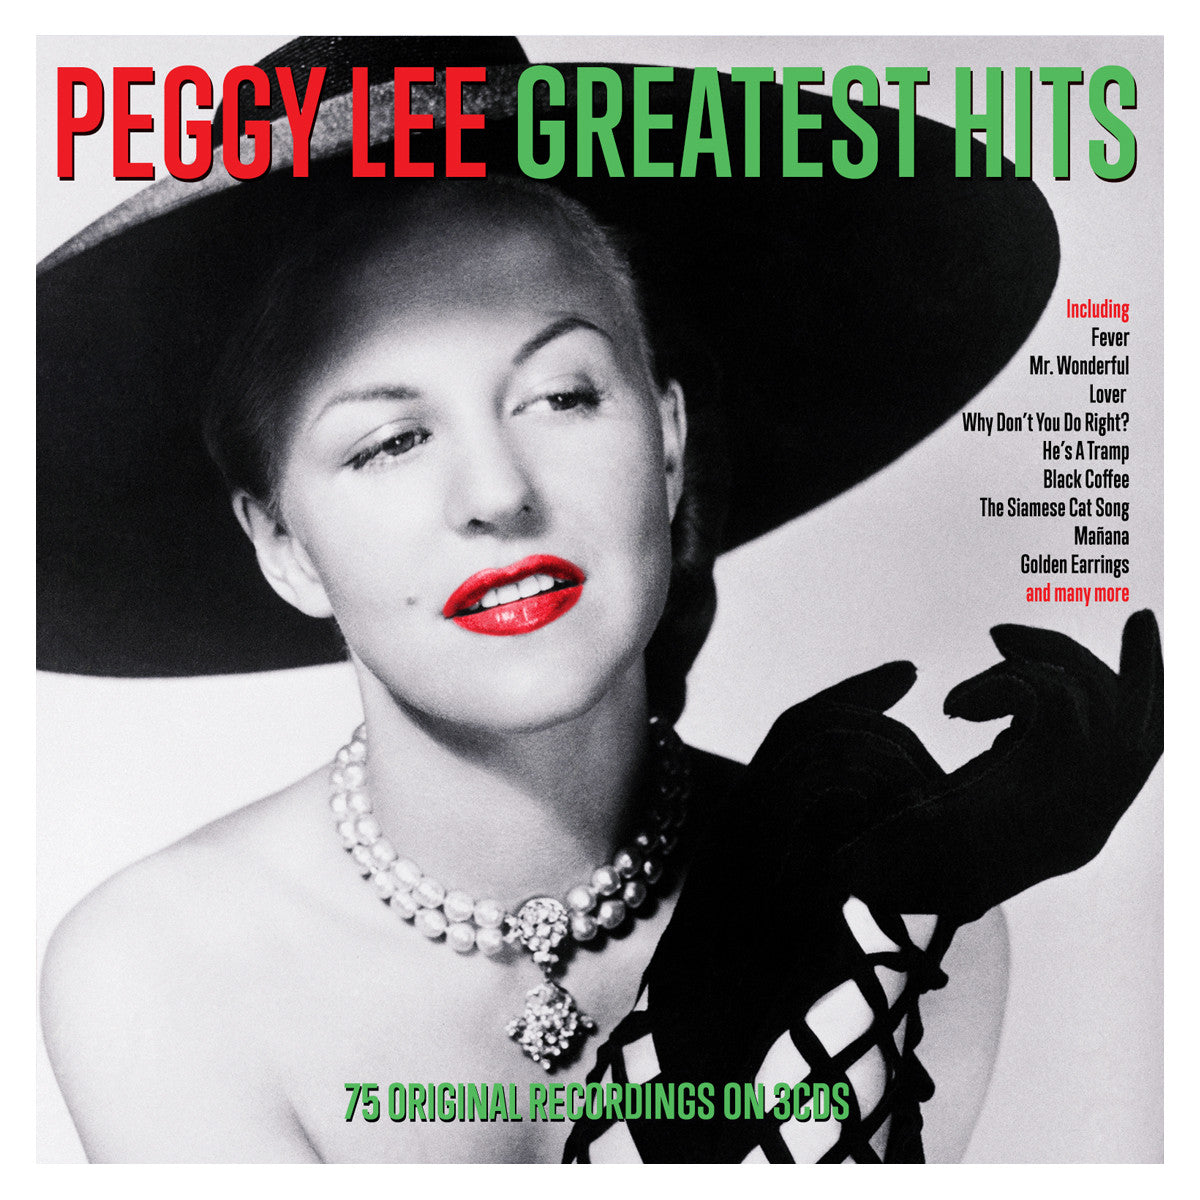 PEGGY LEE: Greatest Hits (3 CDs)